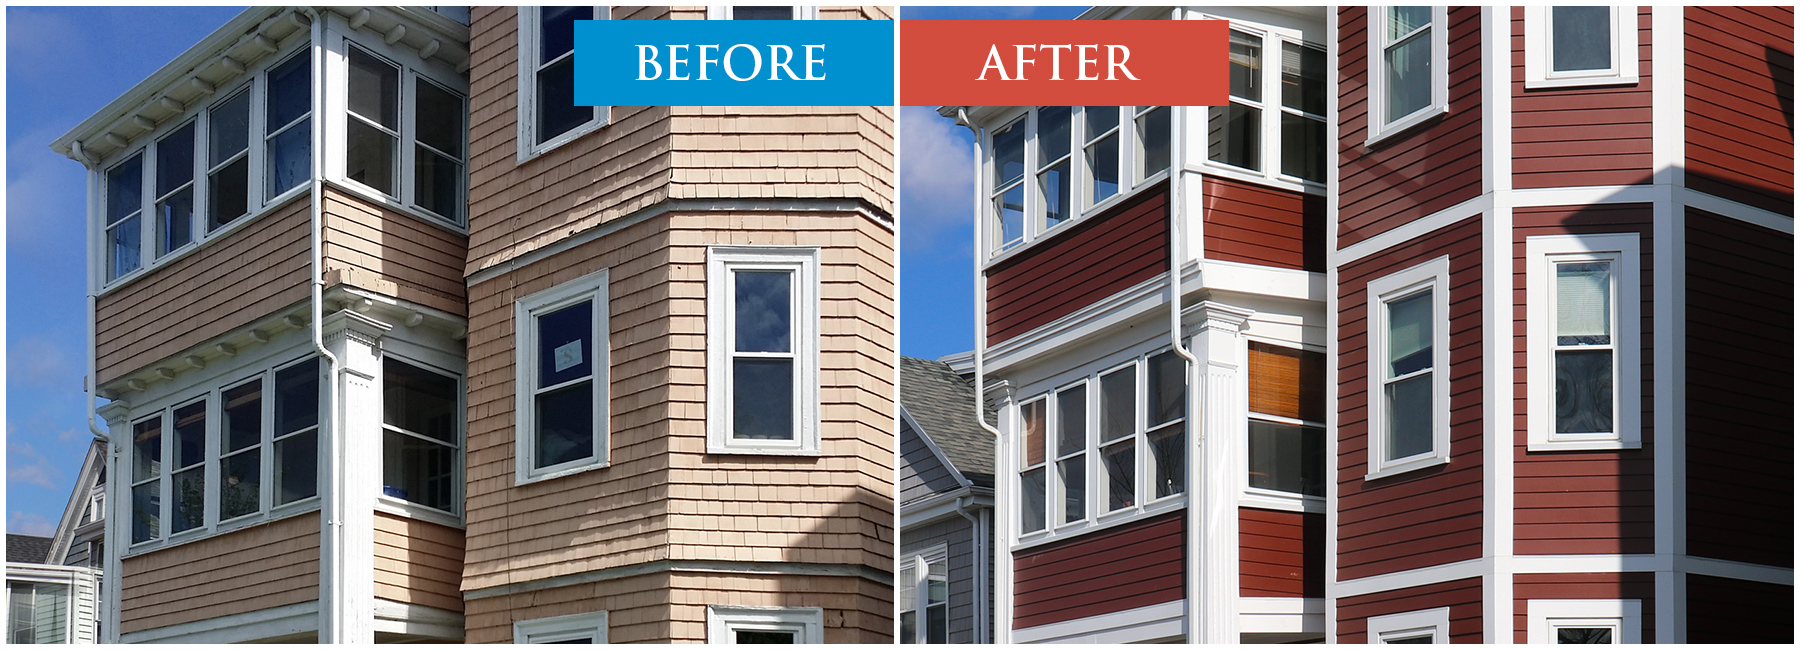 Fiber Cement Siding Before and After Image. Boston MA